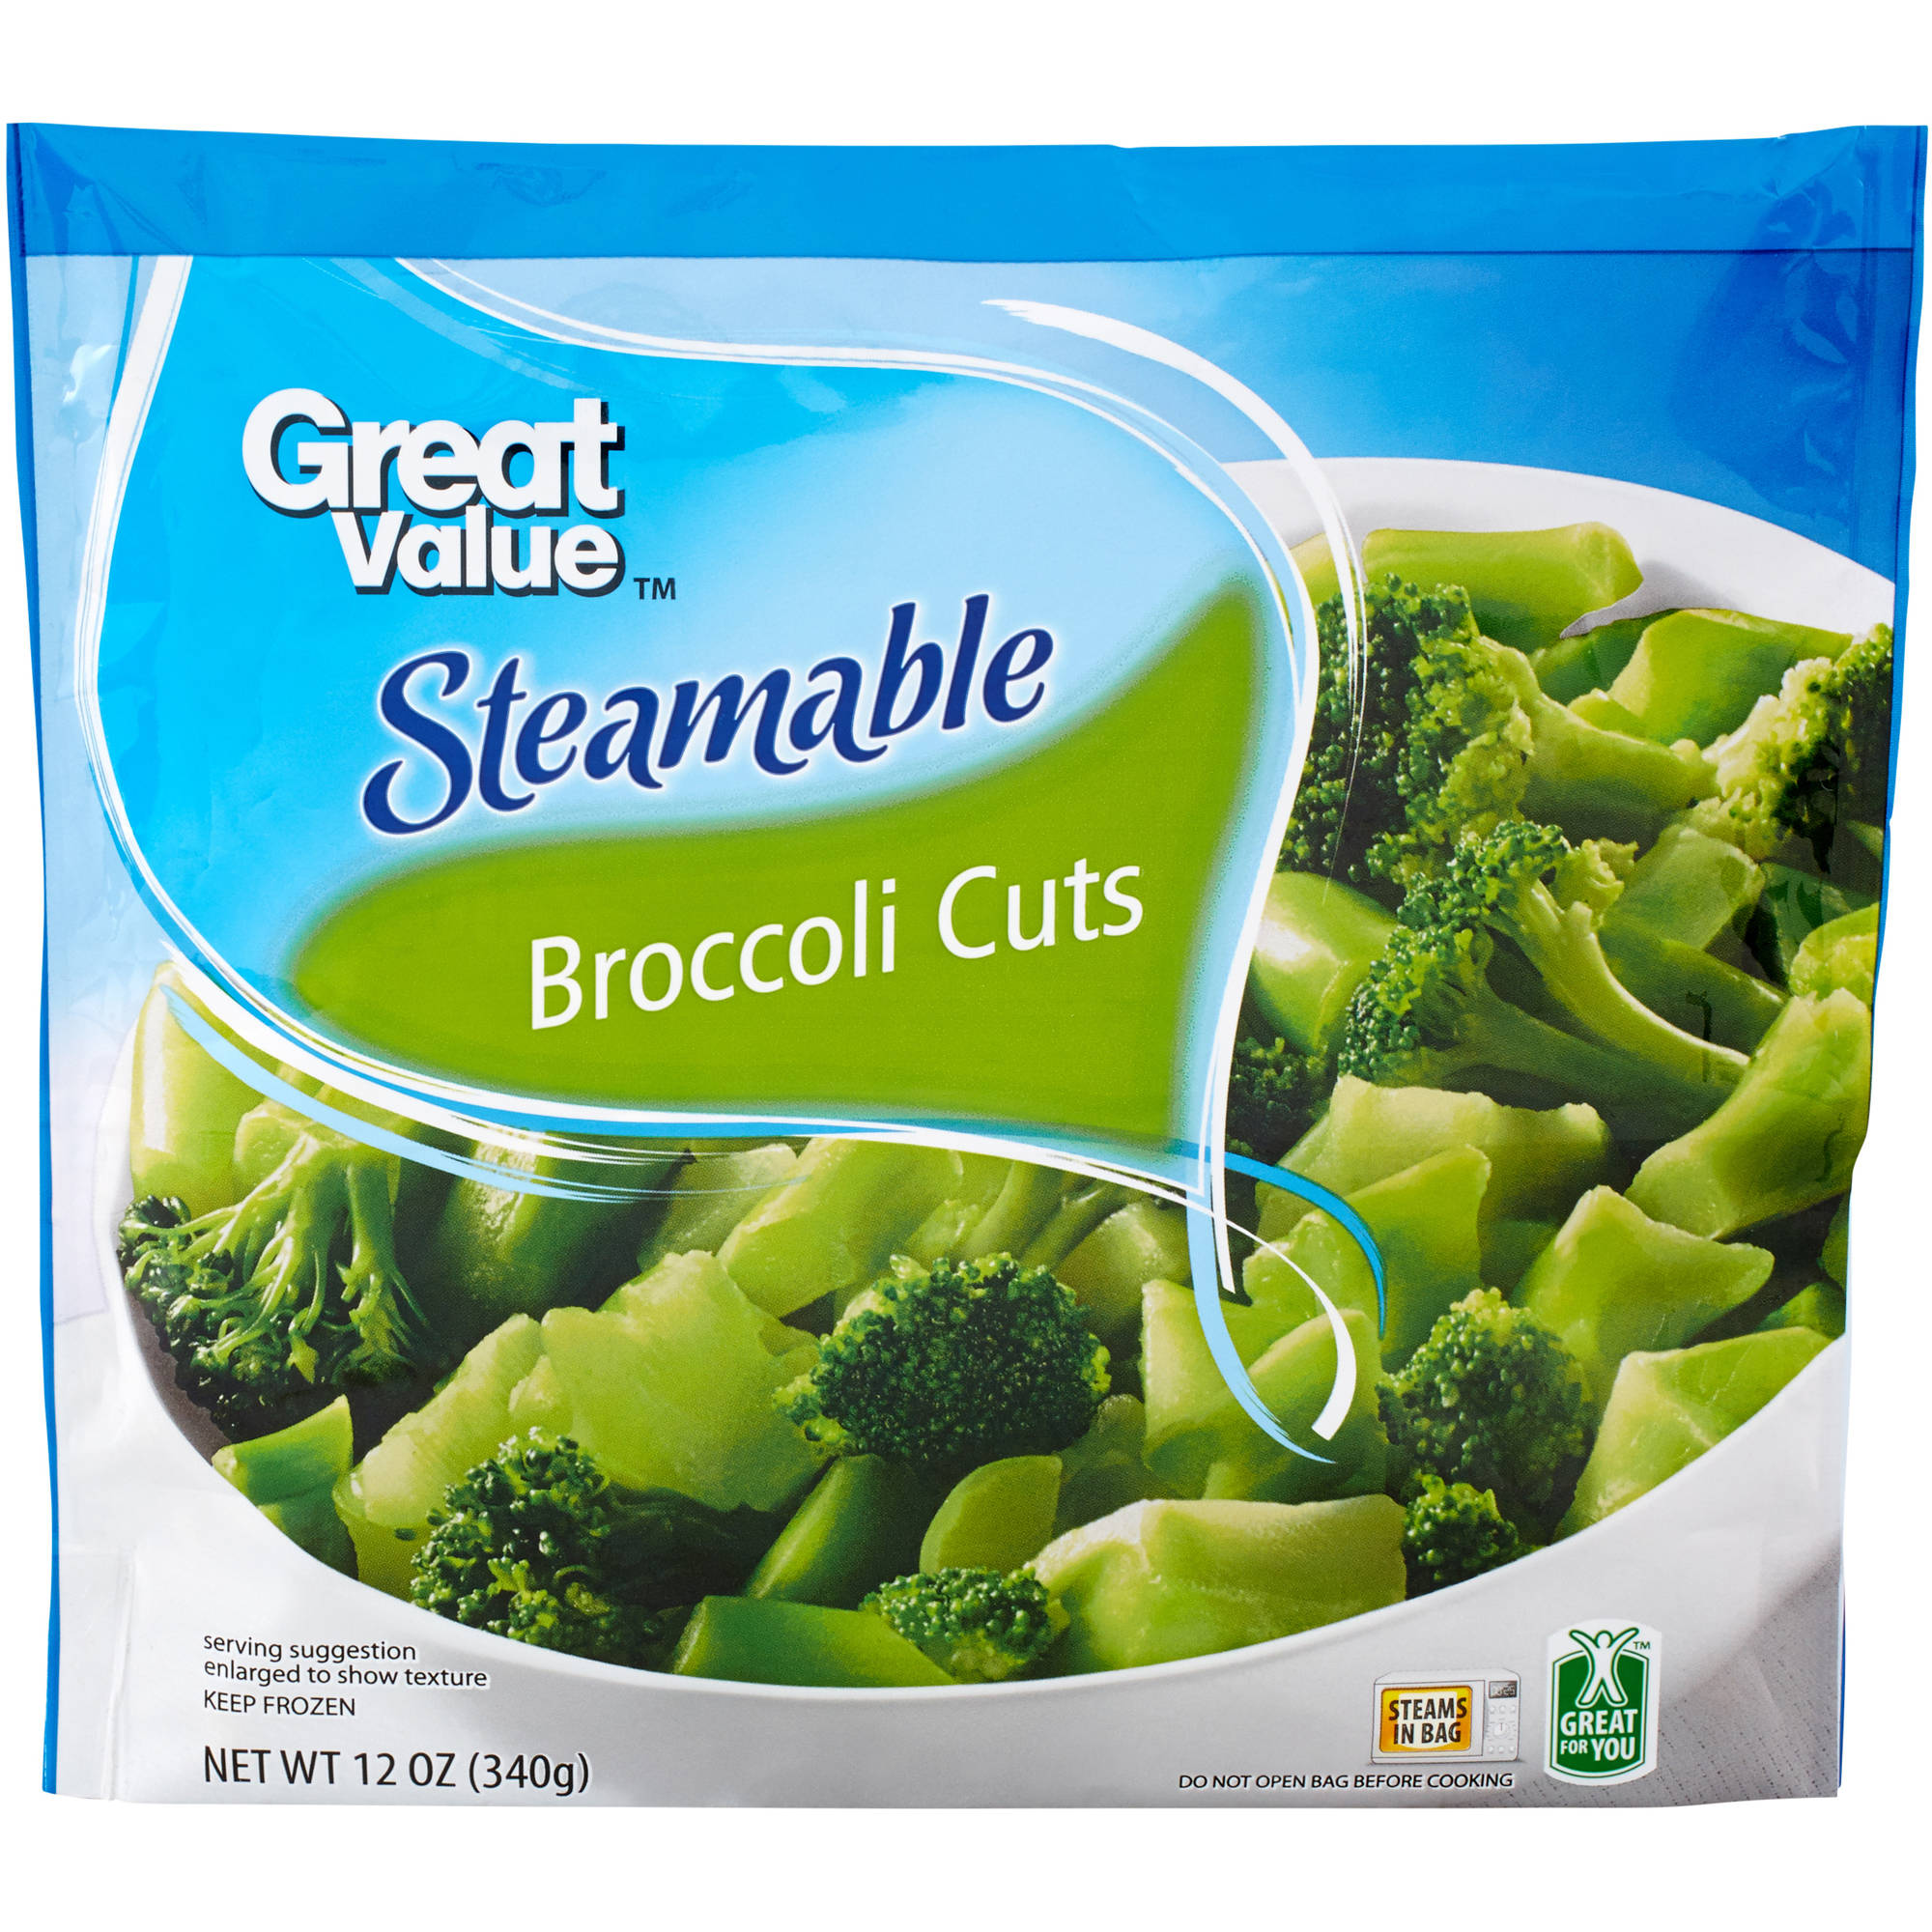 Great Value Steamable Broccoli Cuts, 12 oz